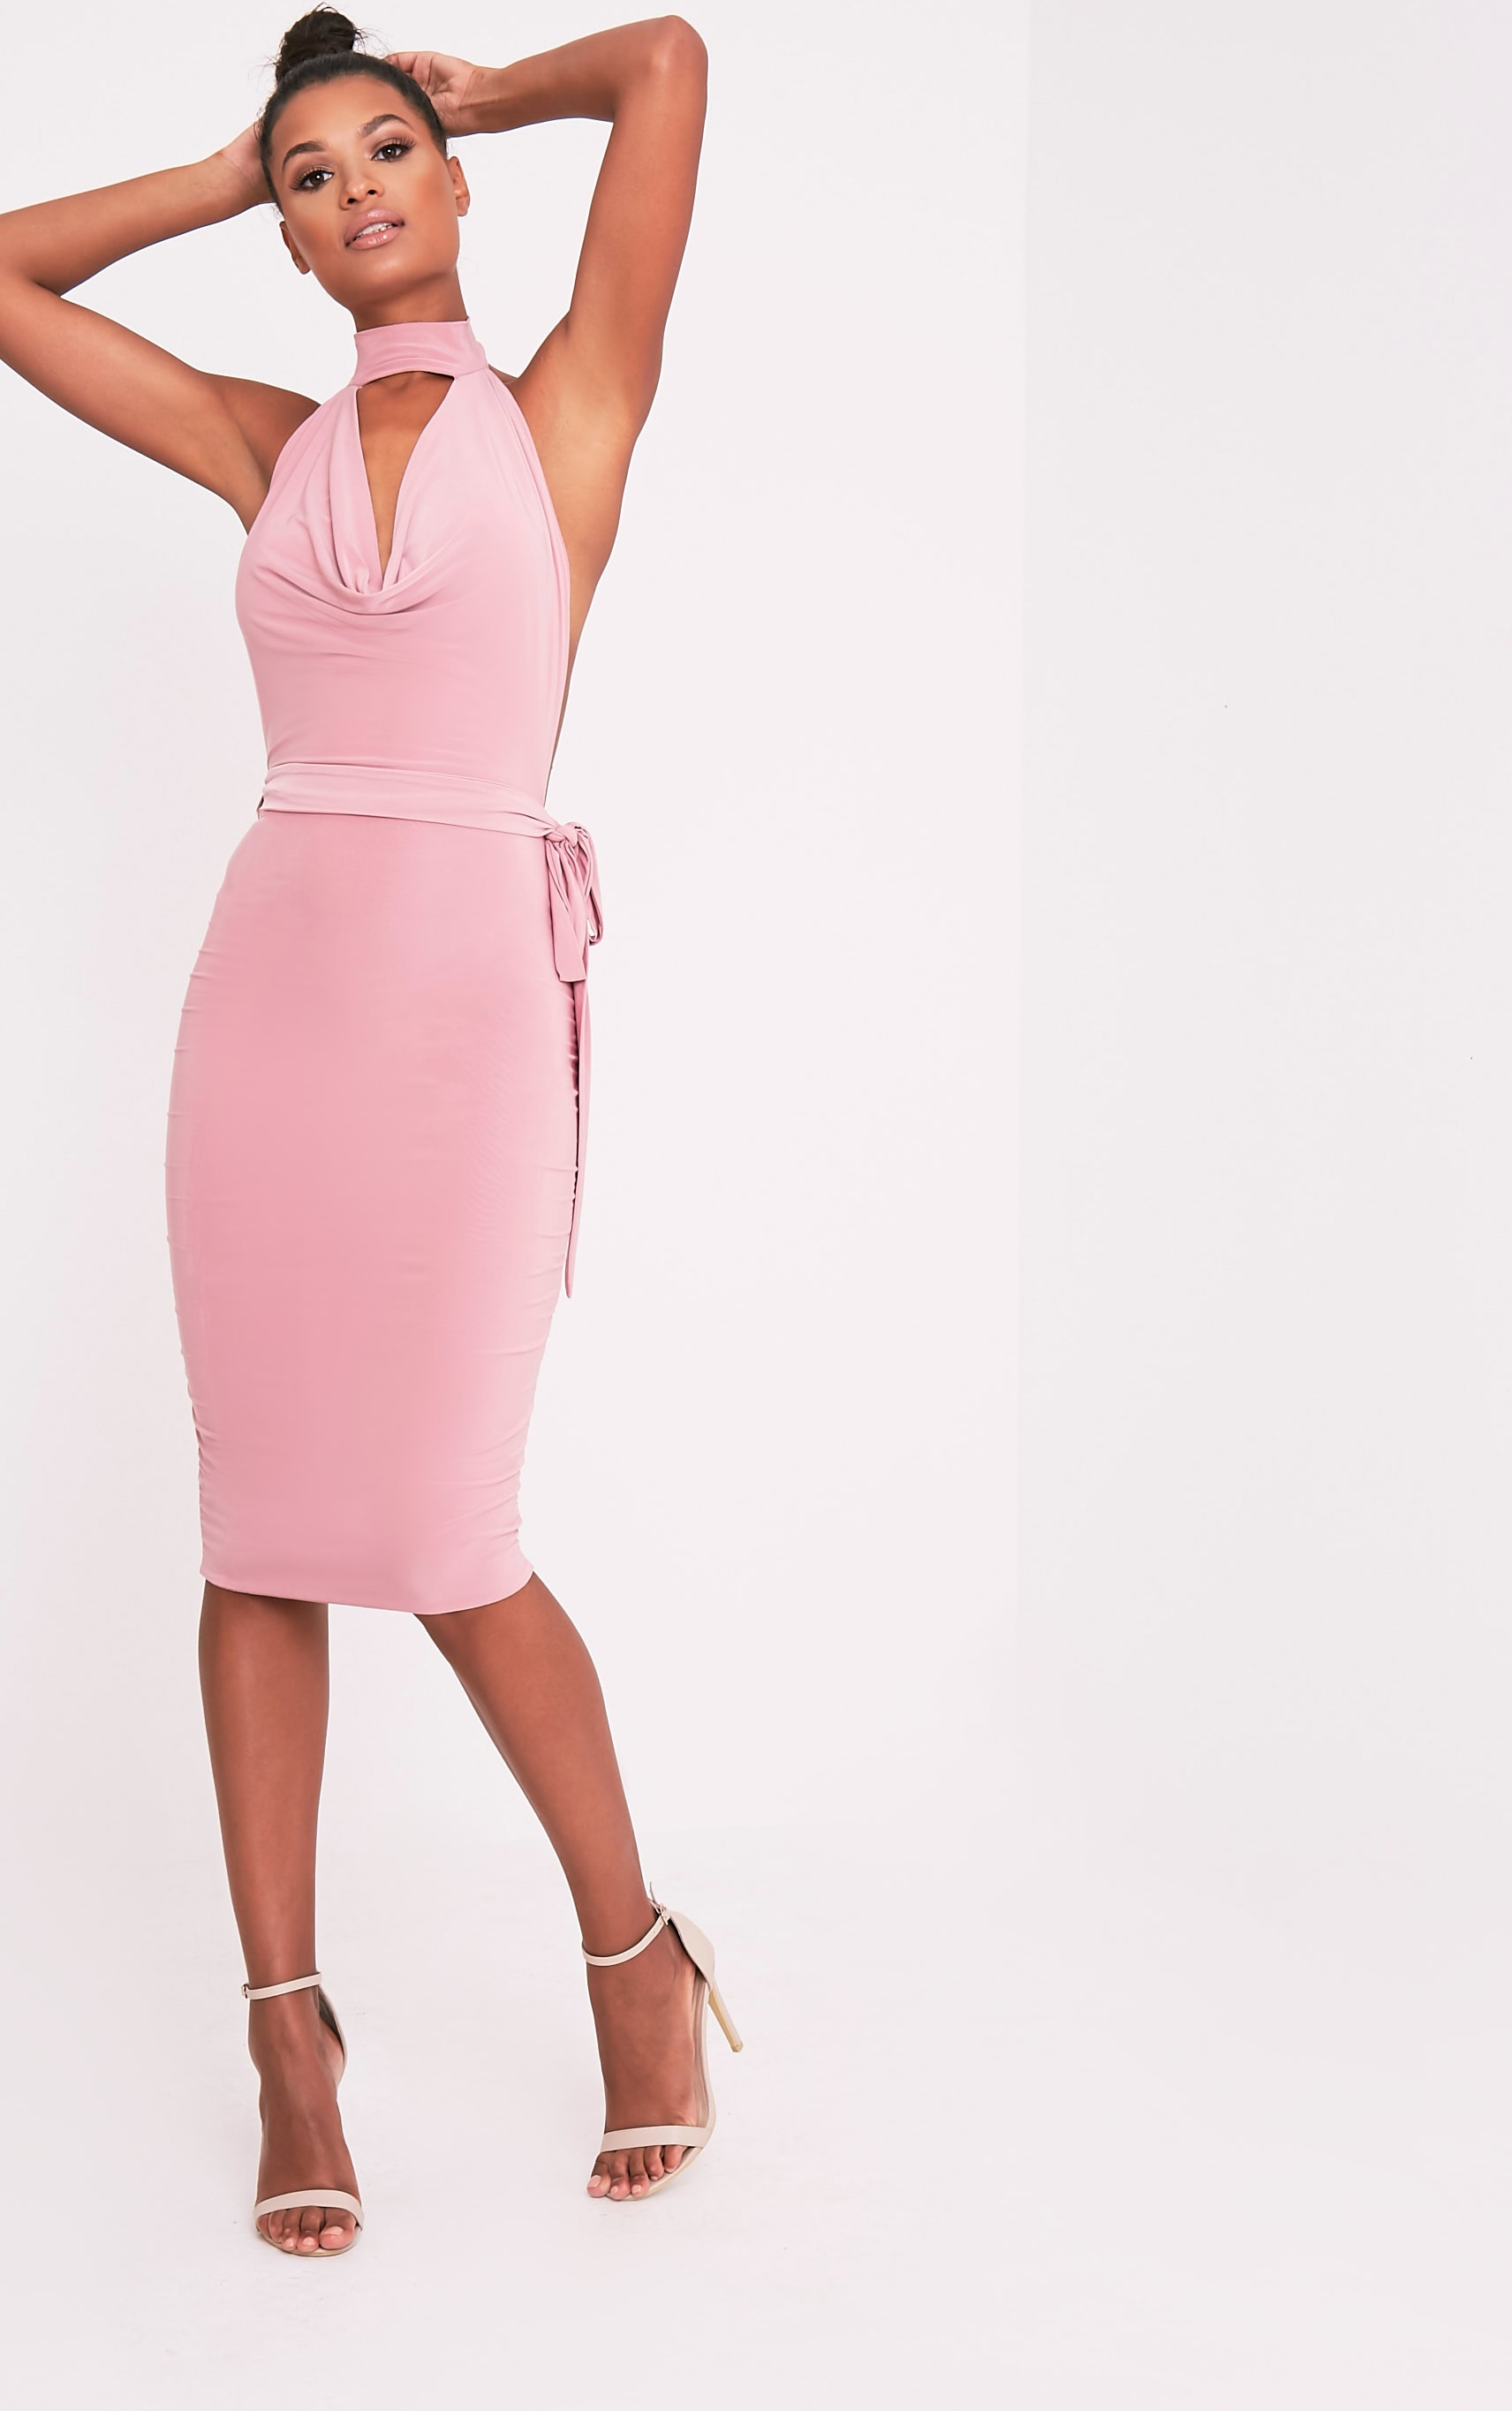 Carllia Pale Pink Slinky Choker Neck Cowl Midi Dress 1